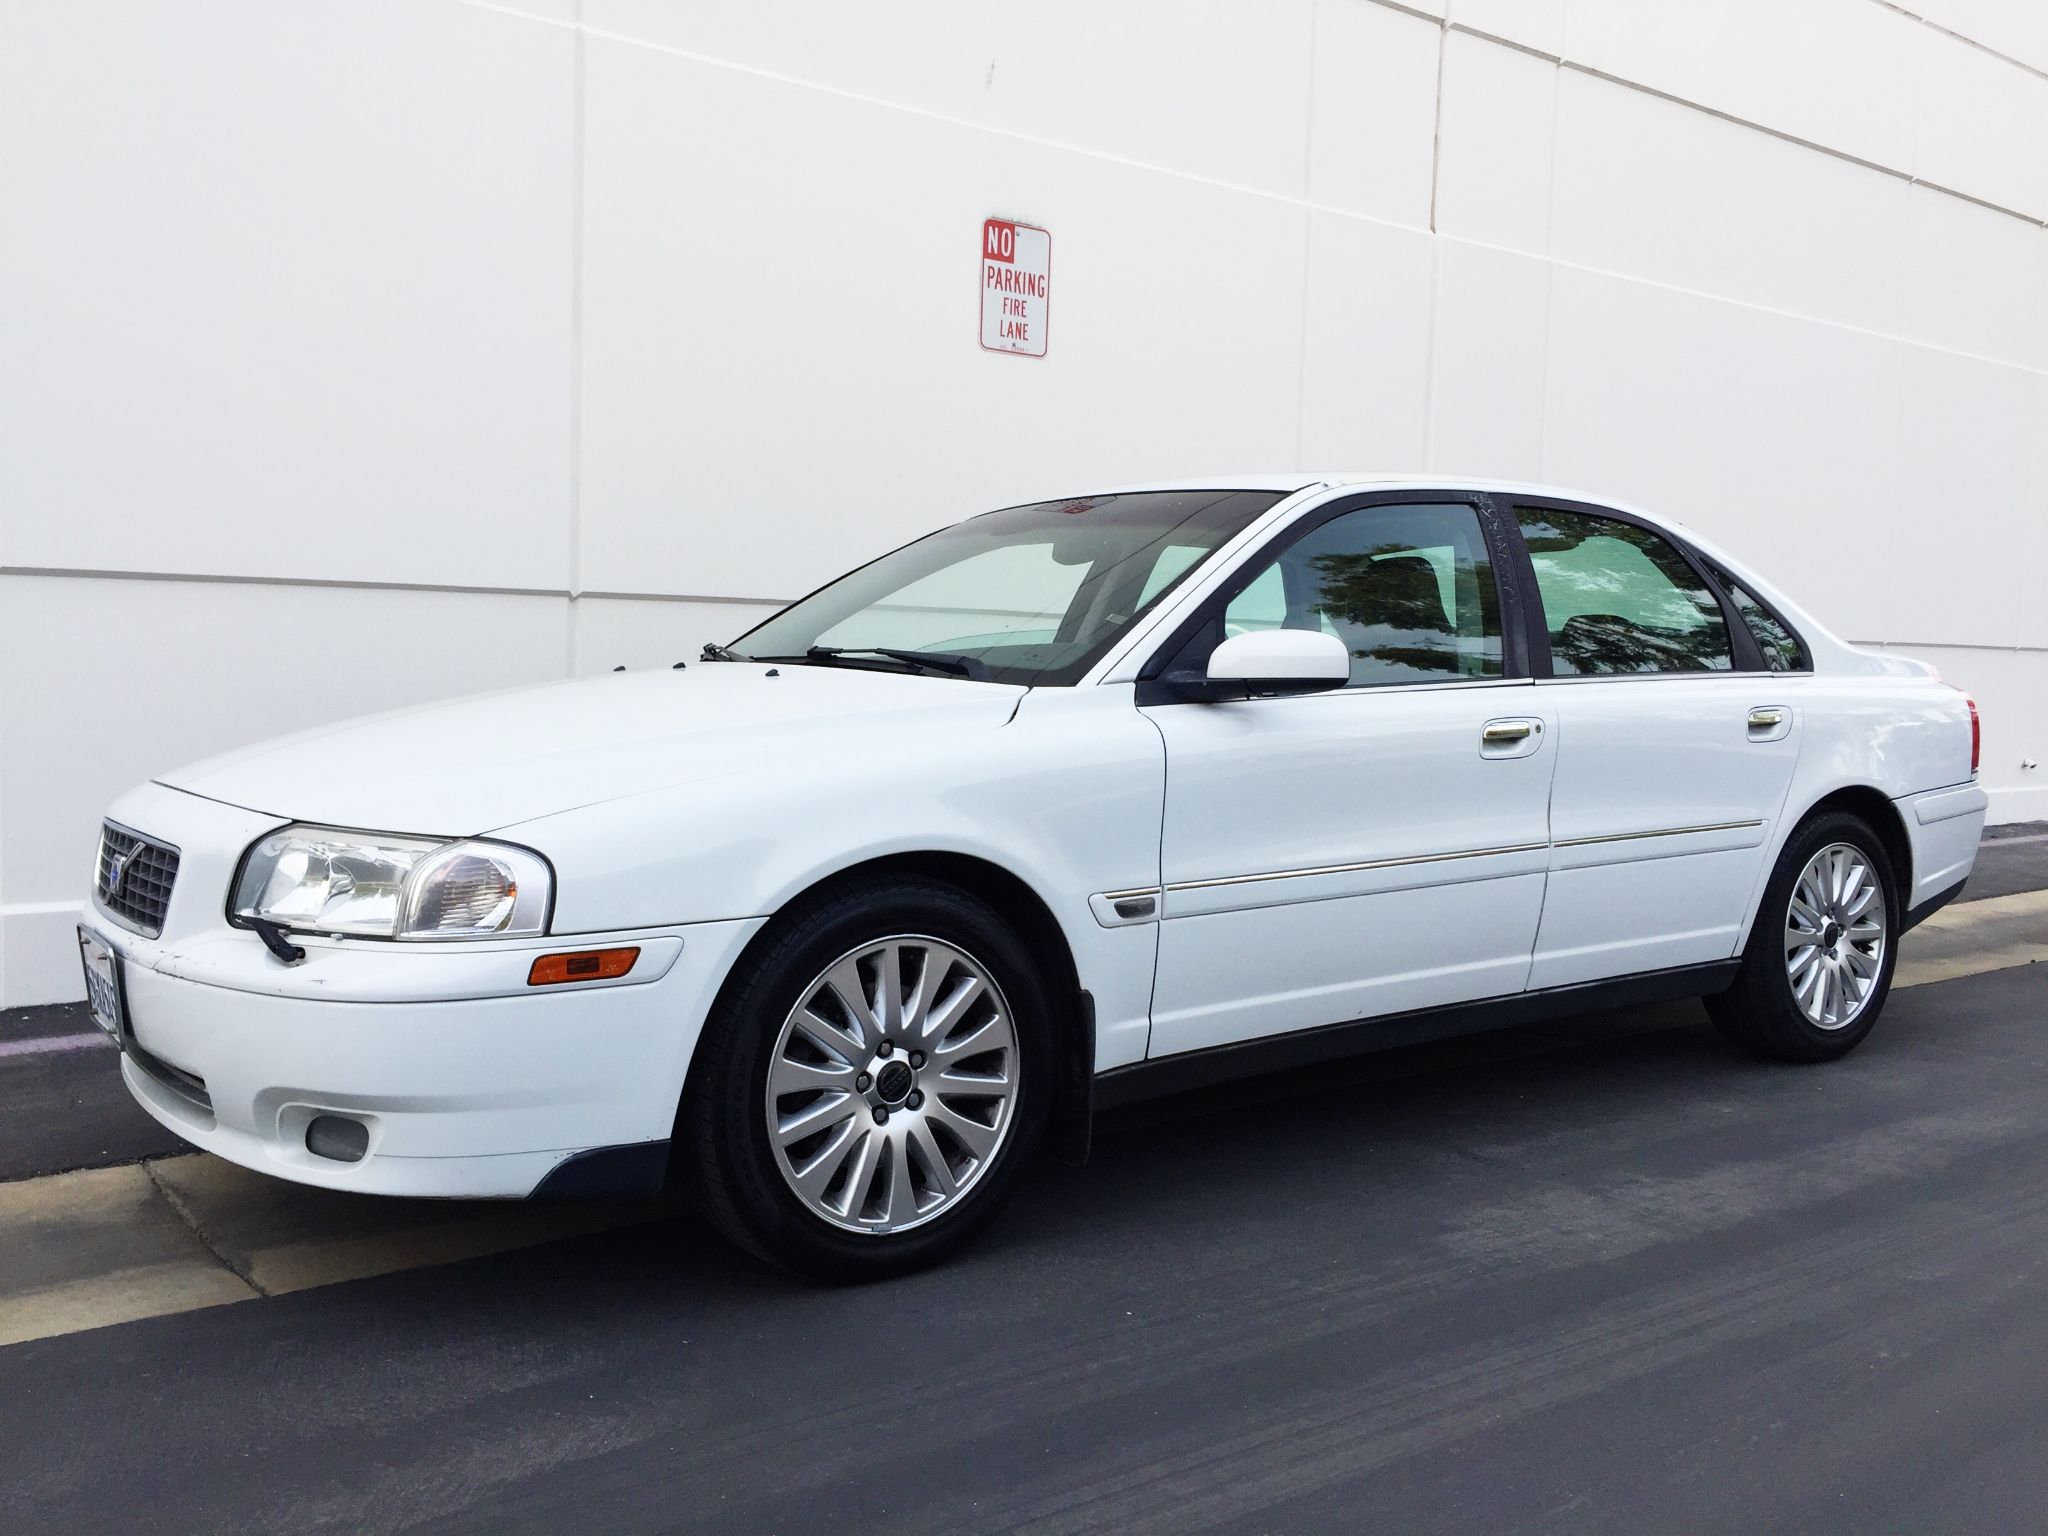 Used 2004 Volvo S80 Limited Edition At City Cars Warehouse Inc